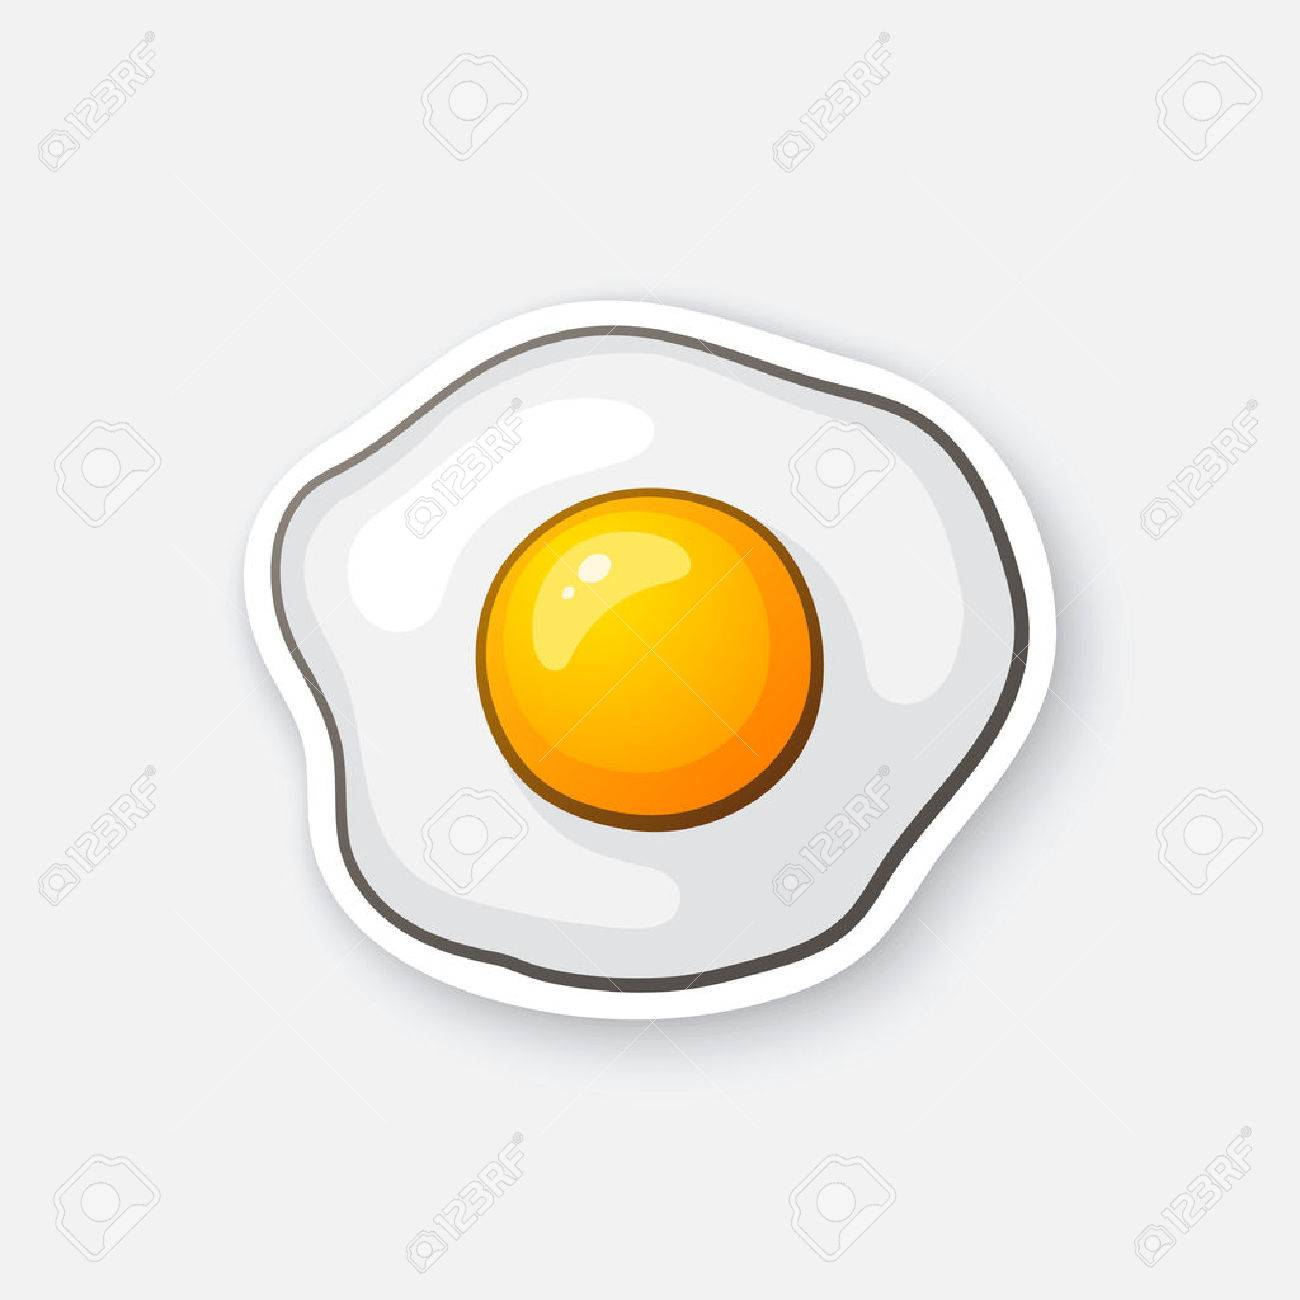 Vector illustration. One fried egg. Scrambled egg. Healthy food. Cartoon sticker in comic style with contour. Decoration for greeting cards, posters, patches, prints for clothes, emblems - 71093982